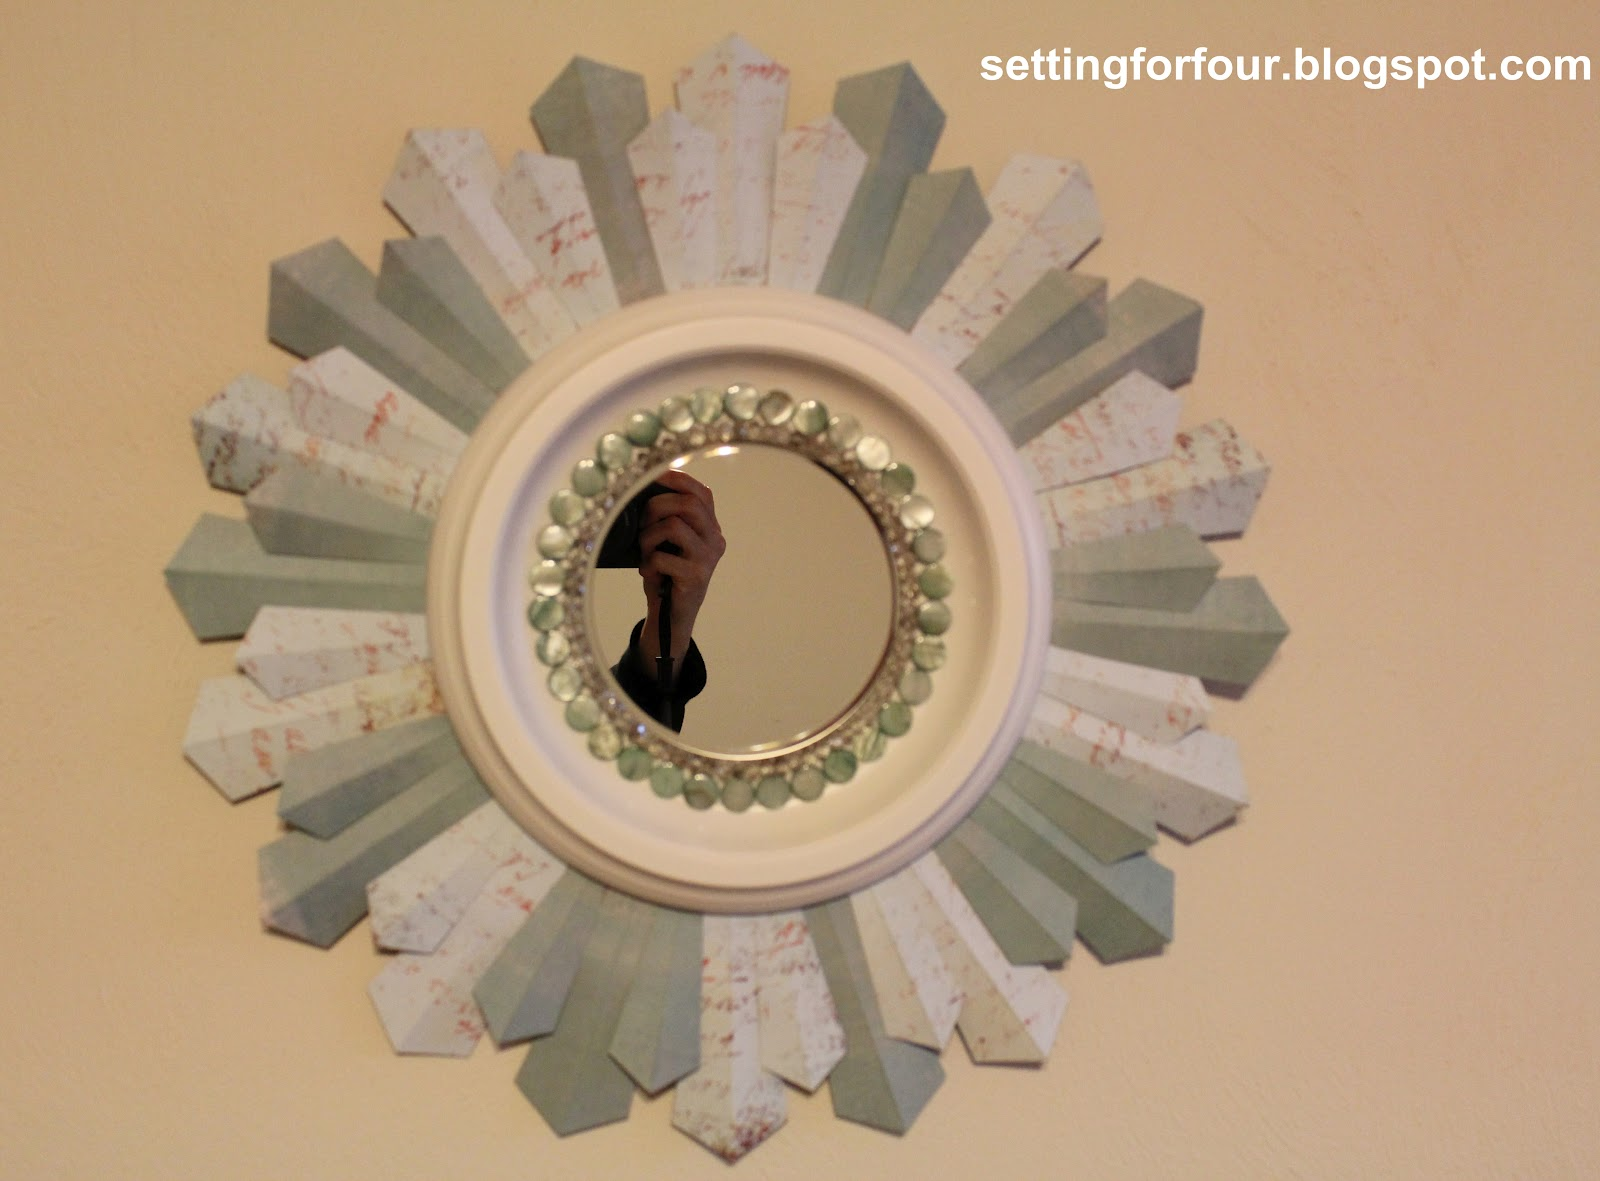 Enjoy your one of a kind DIY Sunburst Mirror DIY